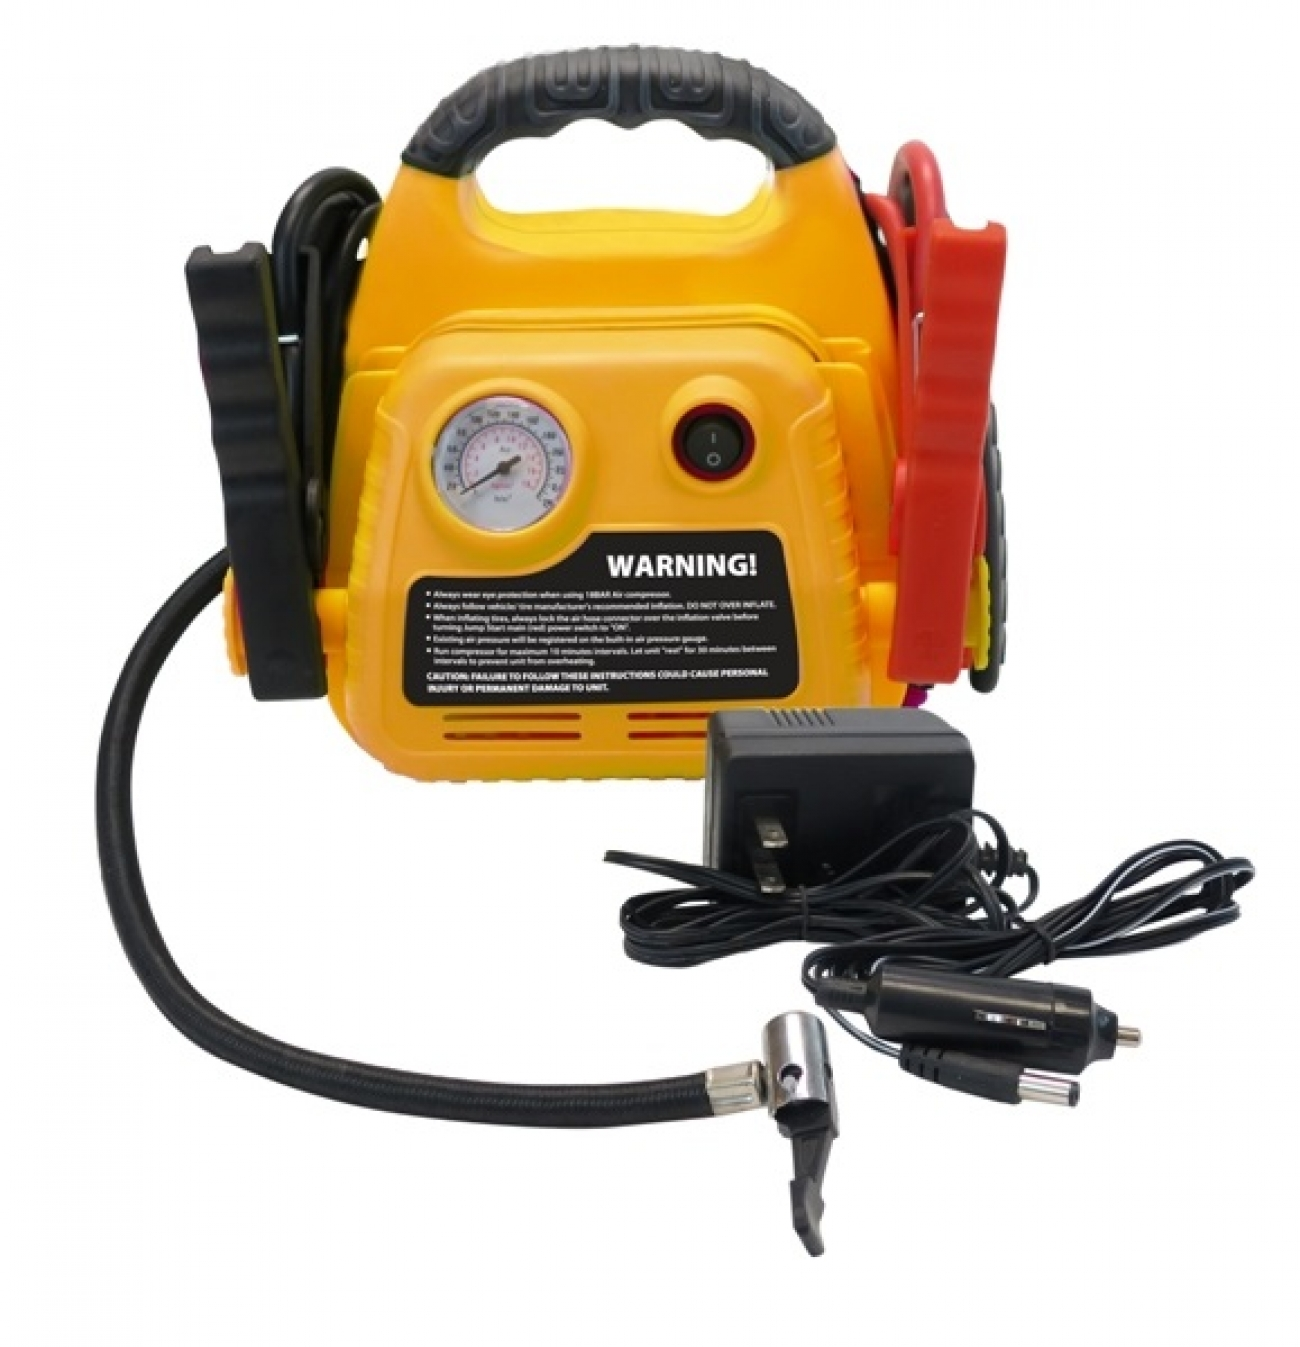 Powerstation with Air Compressor (260 PSI)